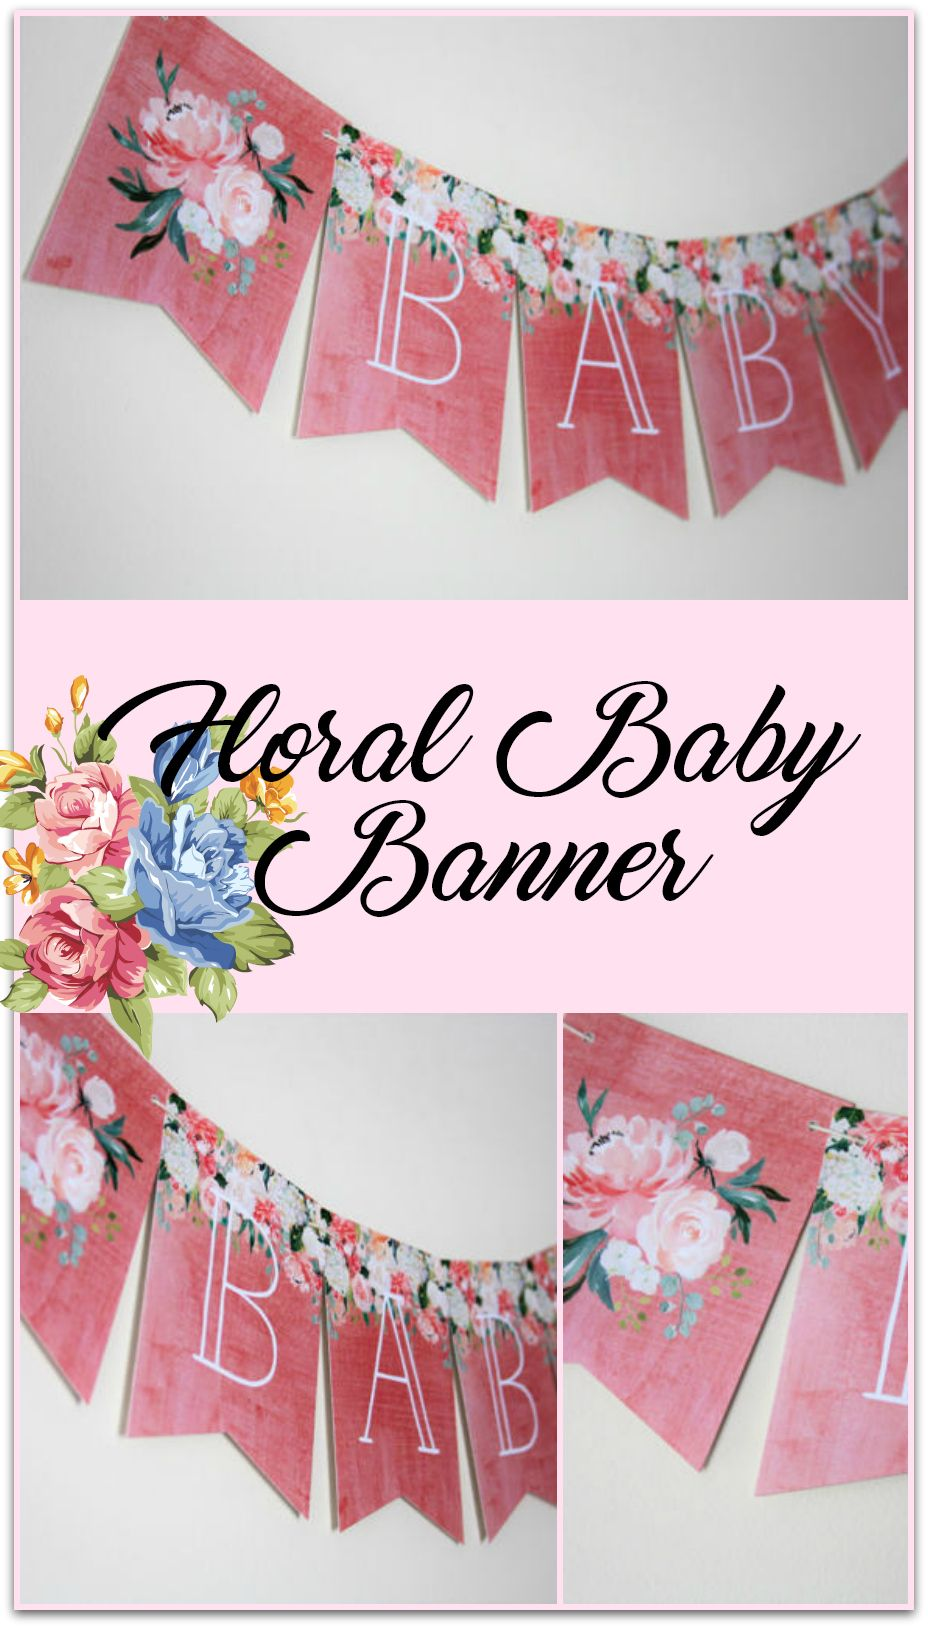 This Is Perfect For A Baby Shower And A Great Keepsake For Her Room